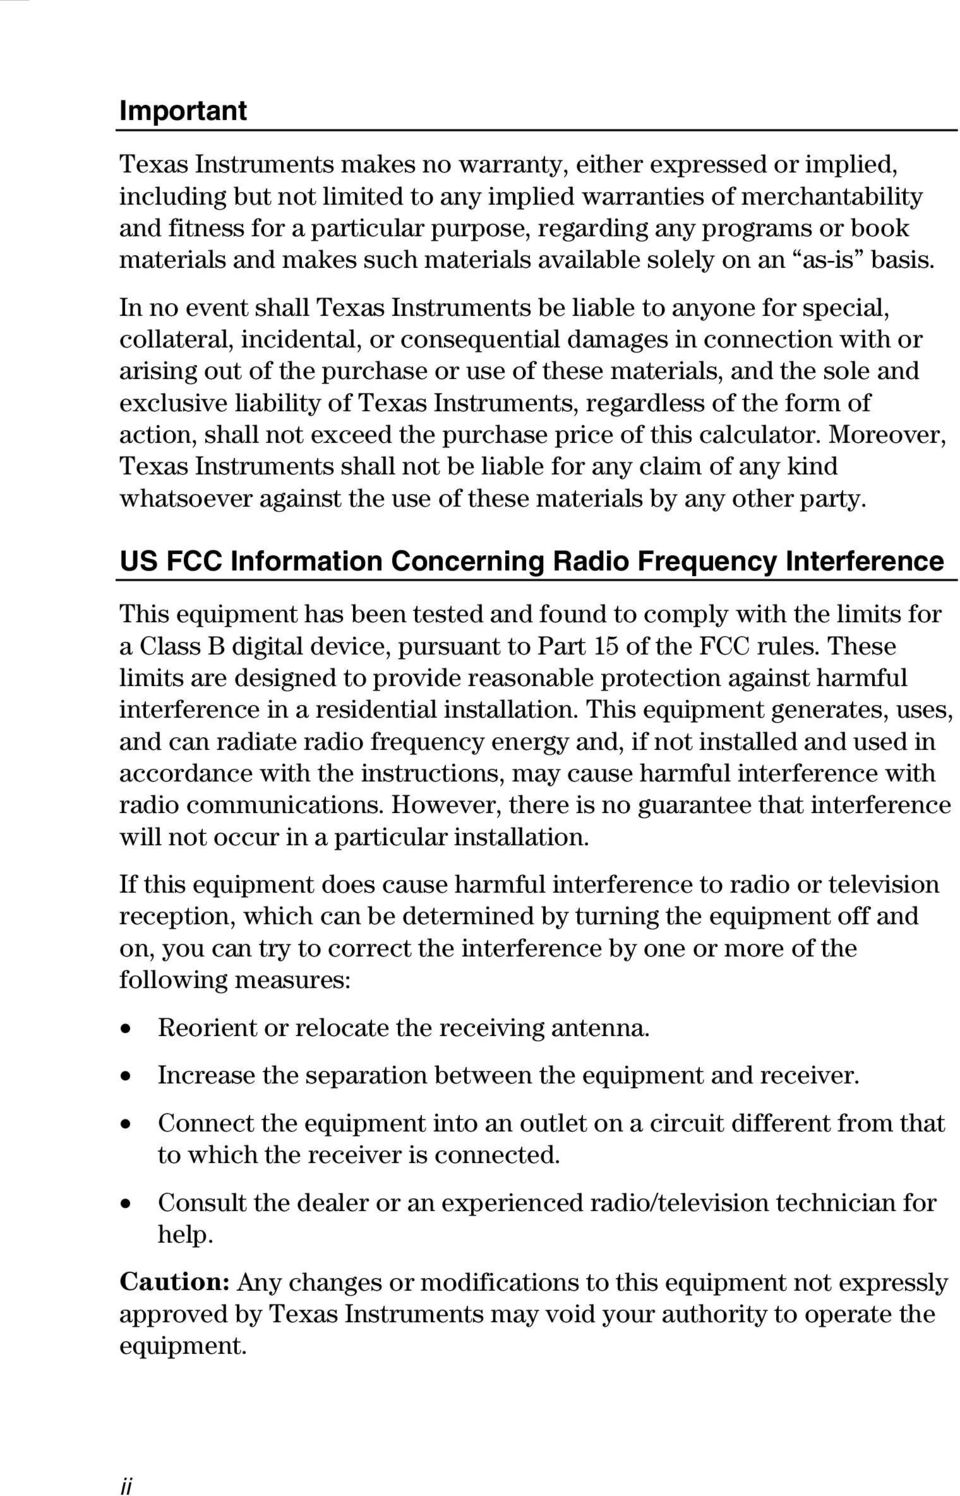 In no event shall Texas Instruments be liable to anyone for special, collateral, incidental, or consequential damages in connection with or arising out of the purchase or use of these materials, and